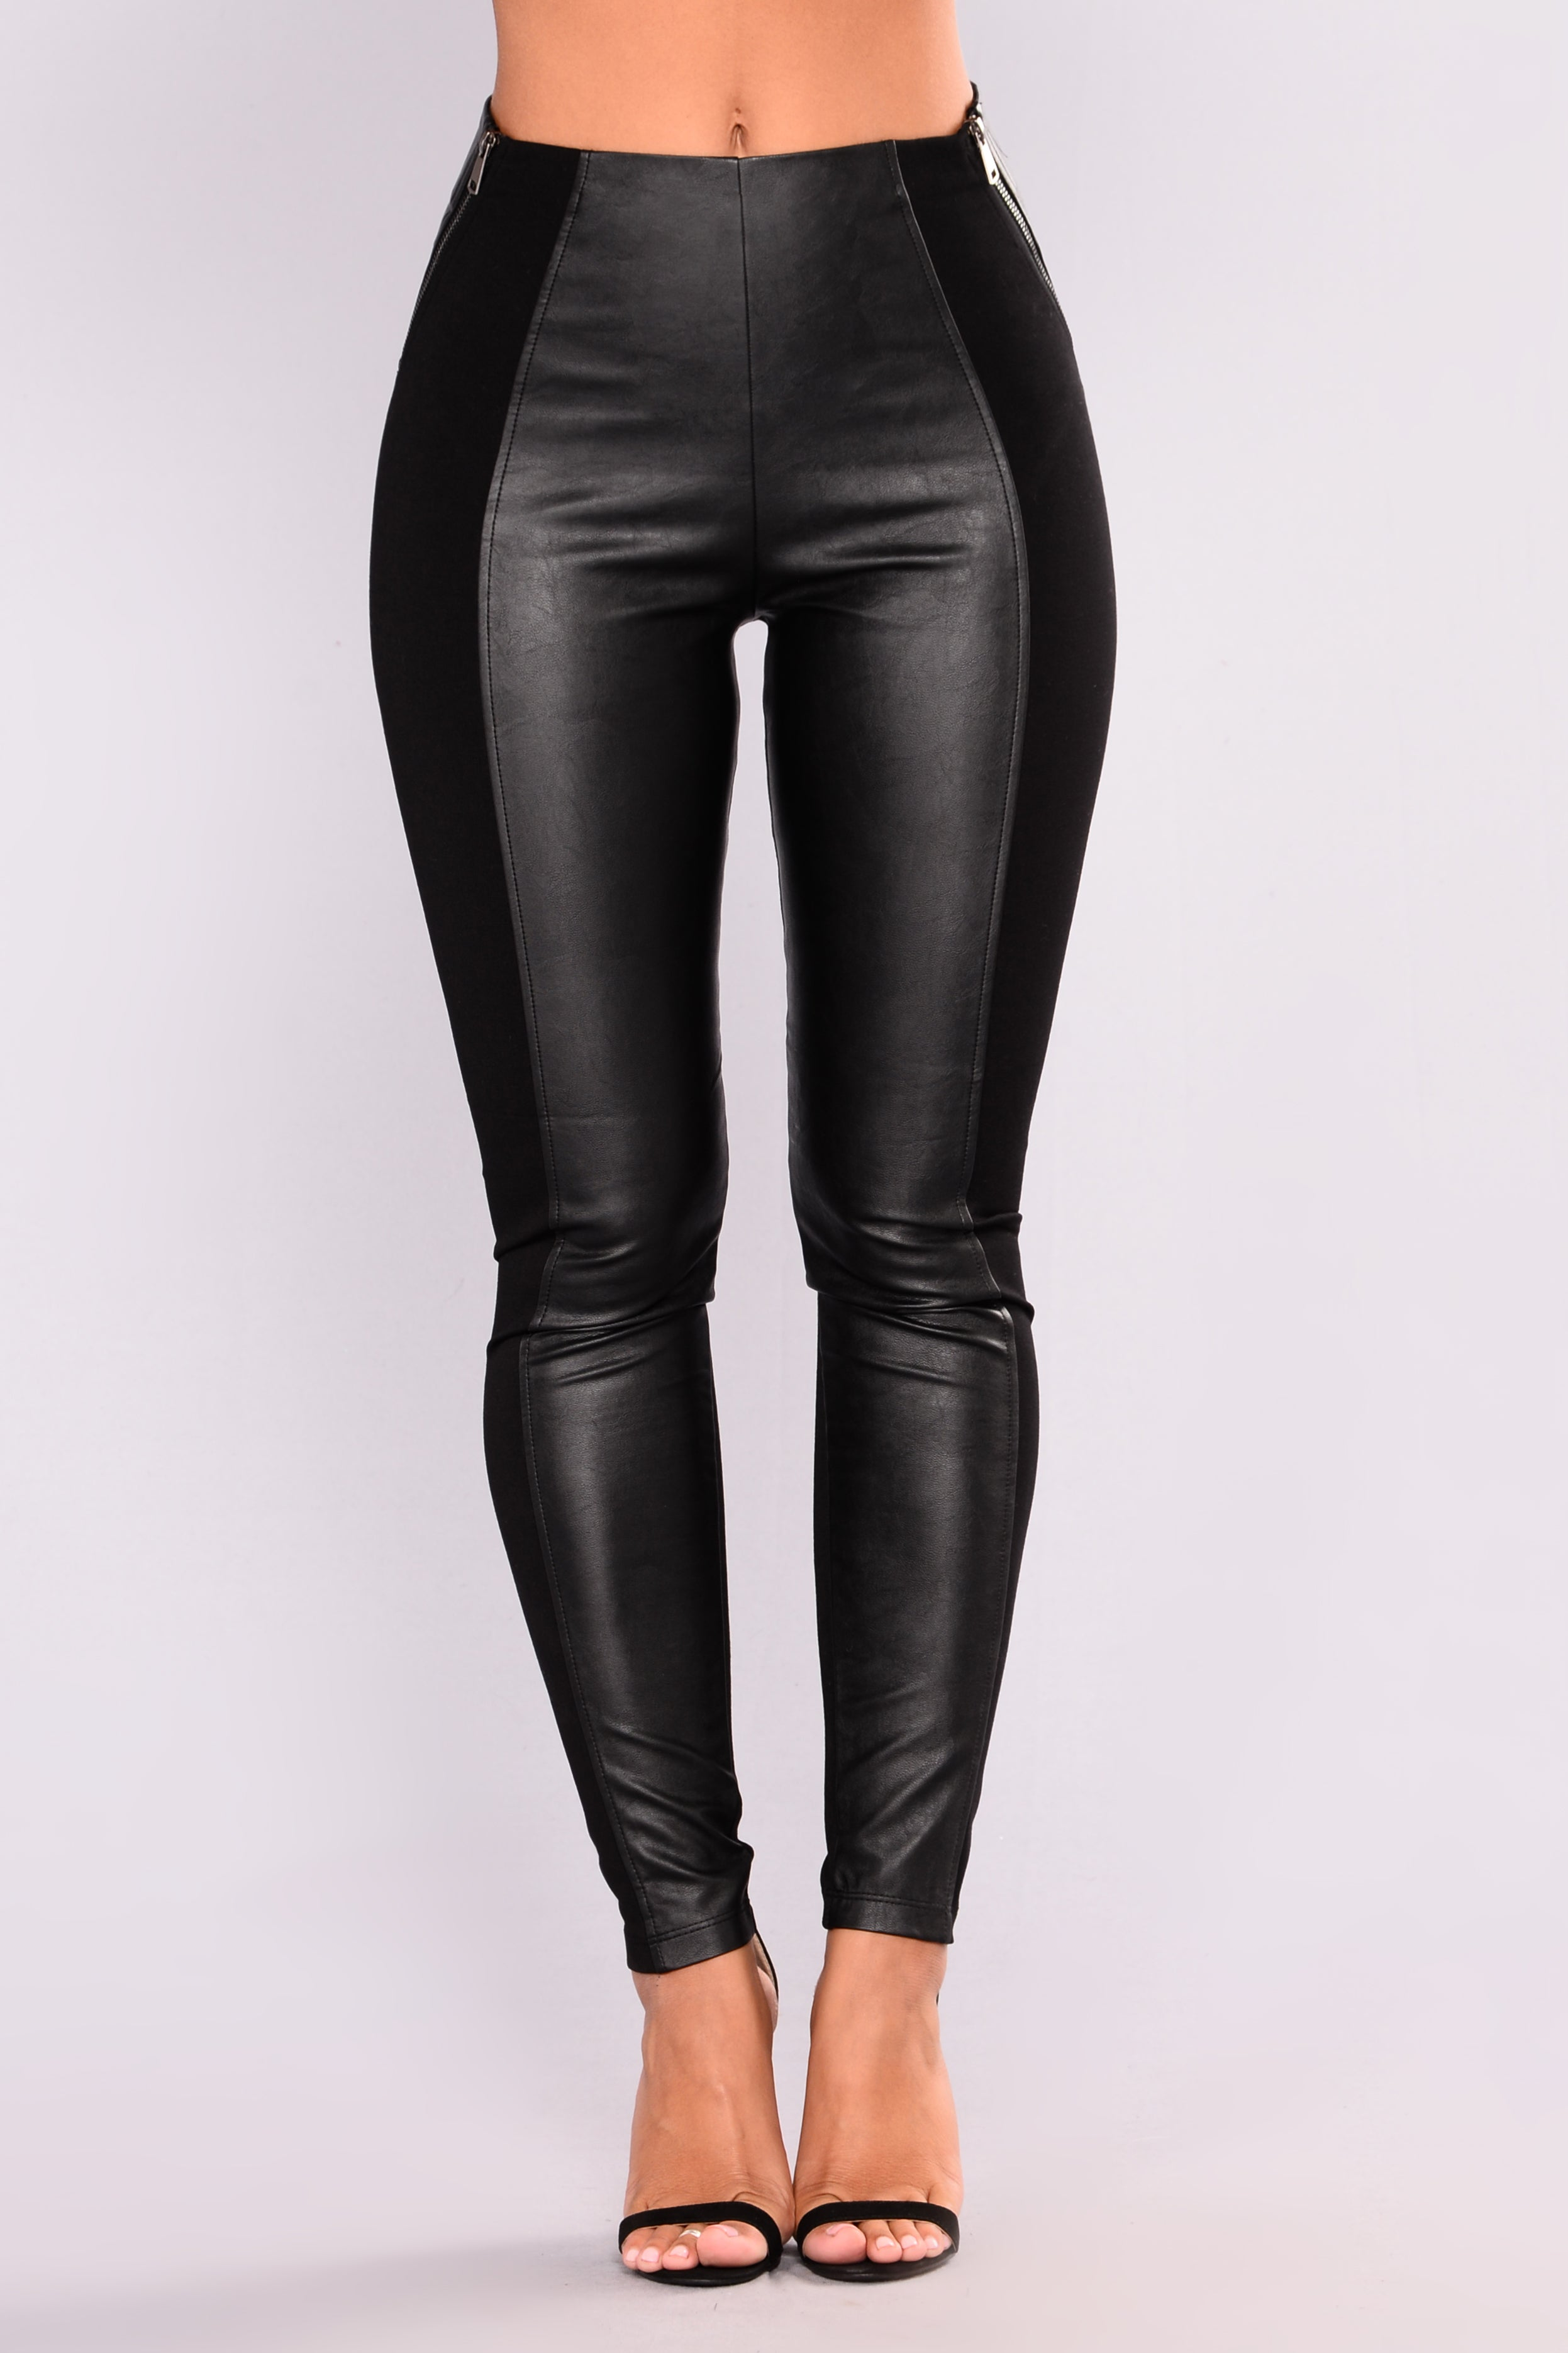 Faux leather leggings 33 inseam